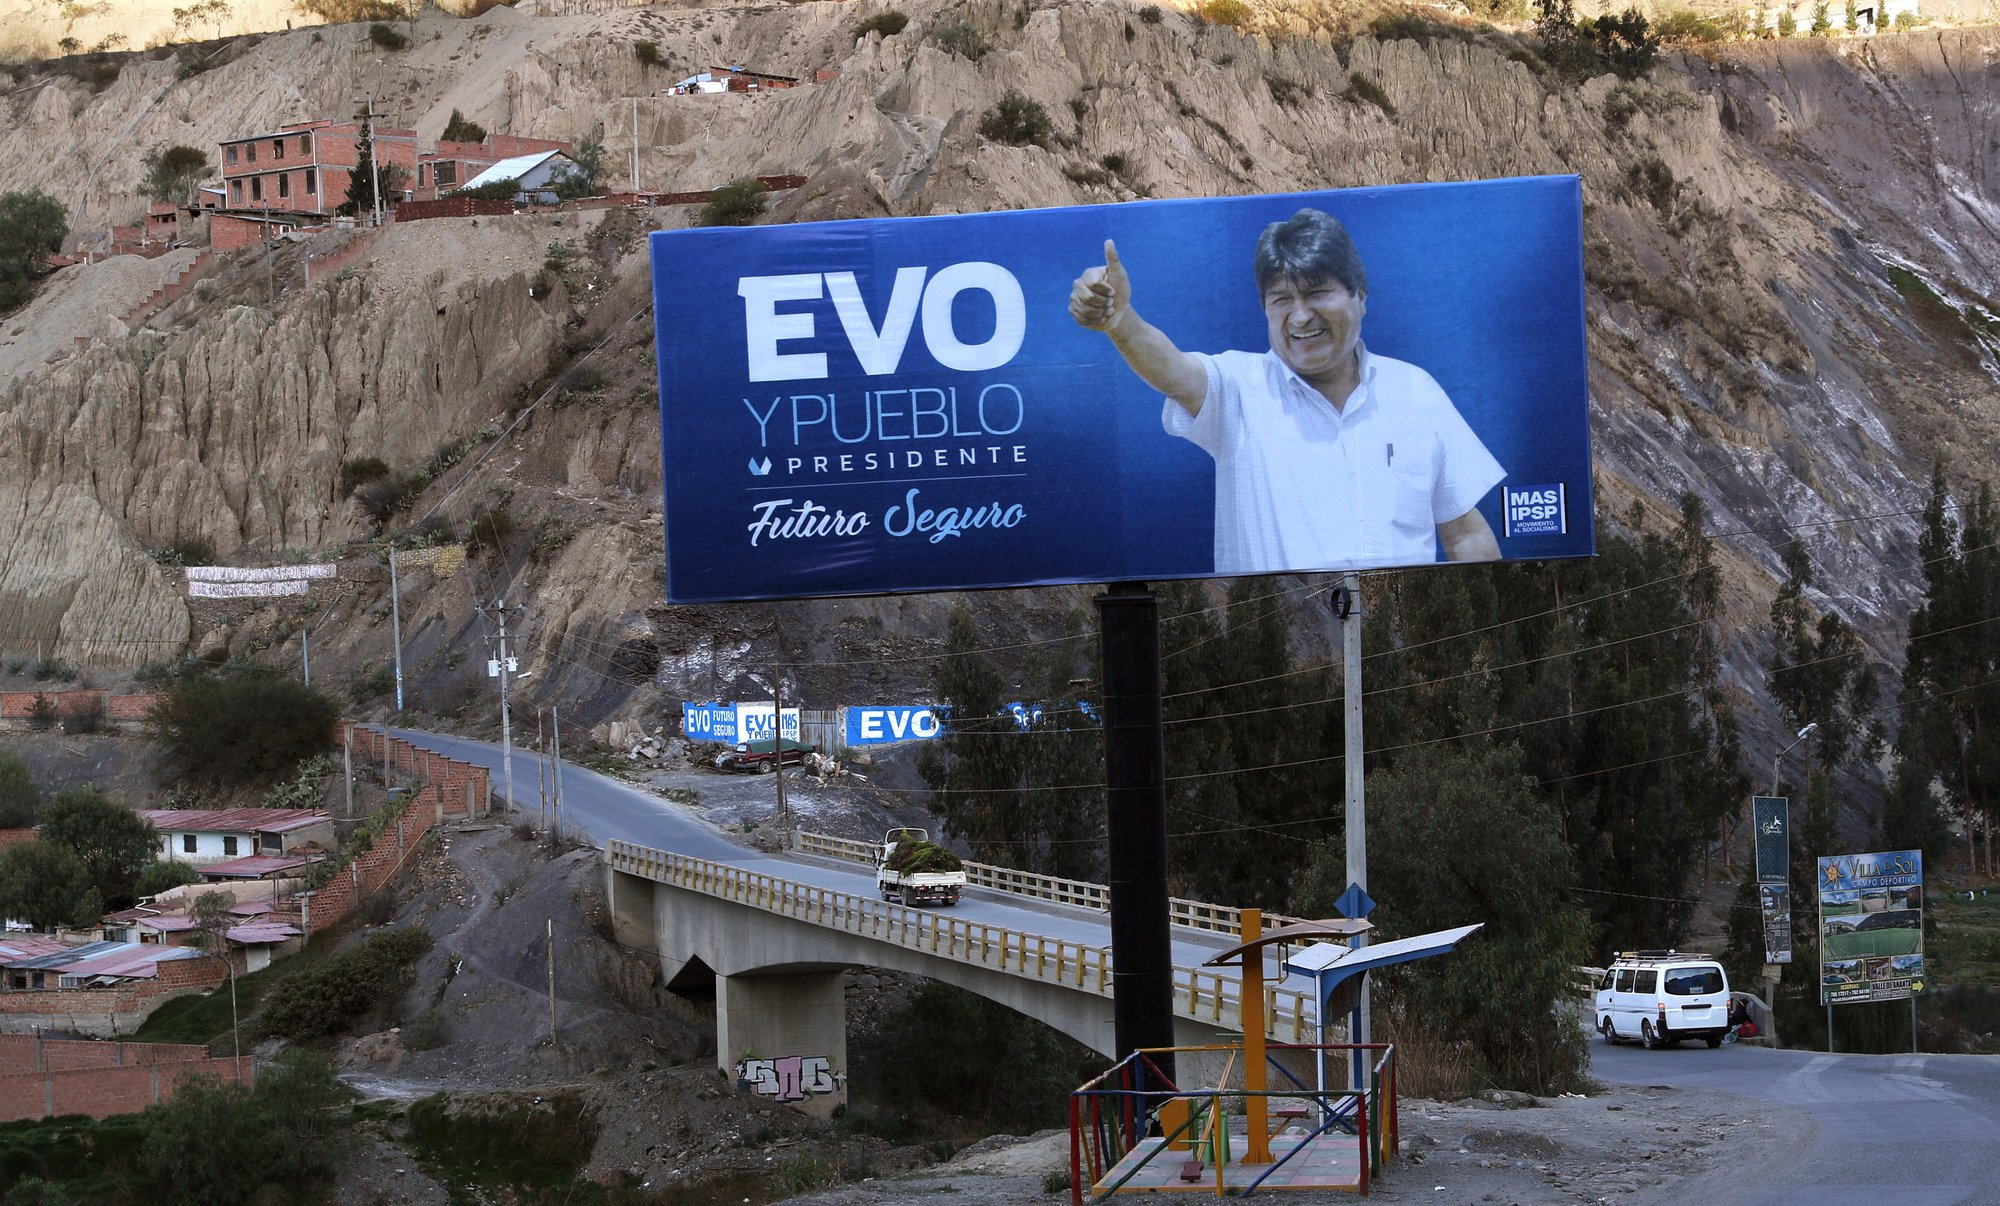 Evo Morales faces toughest test to keep power in Bolivia